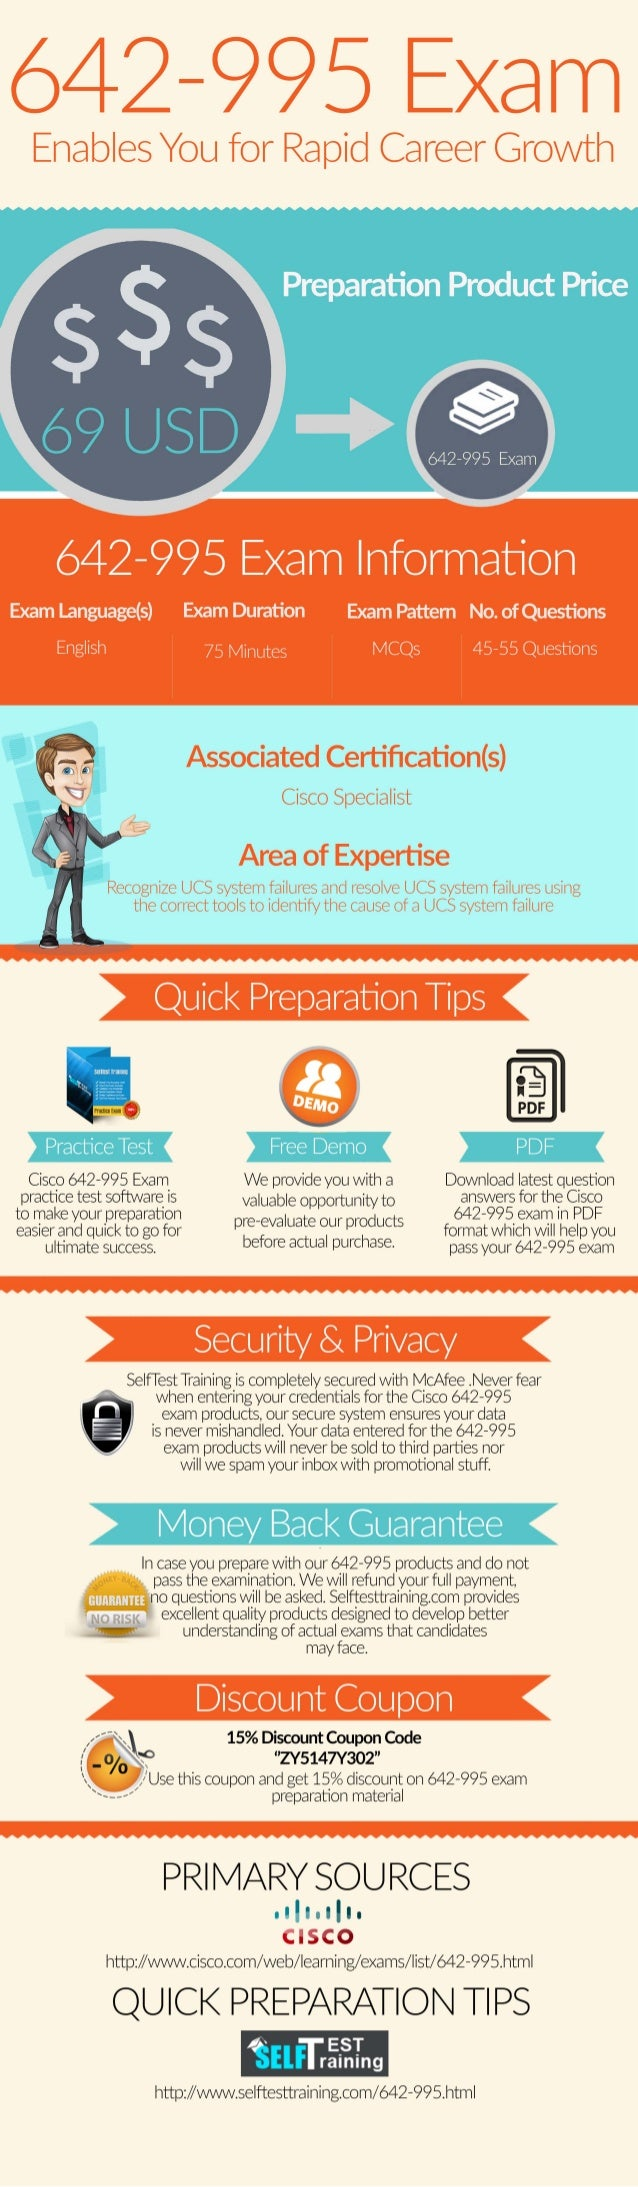 642-995 exam questions - pass 642-995 quickly [Infographic]